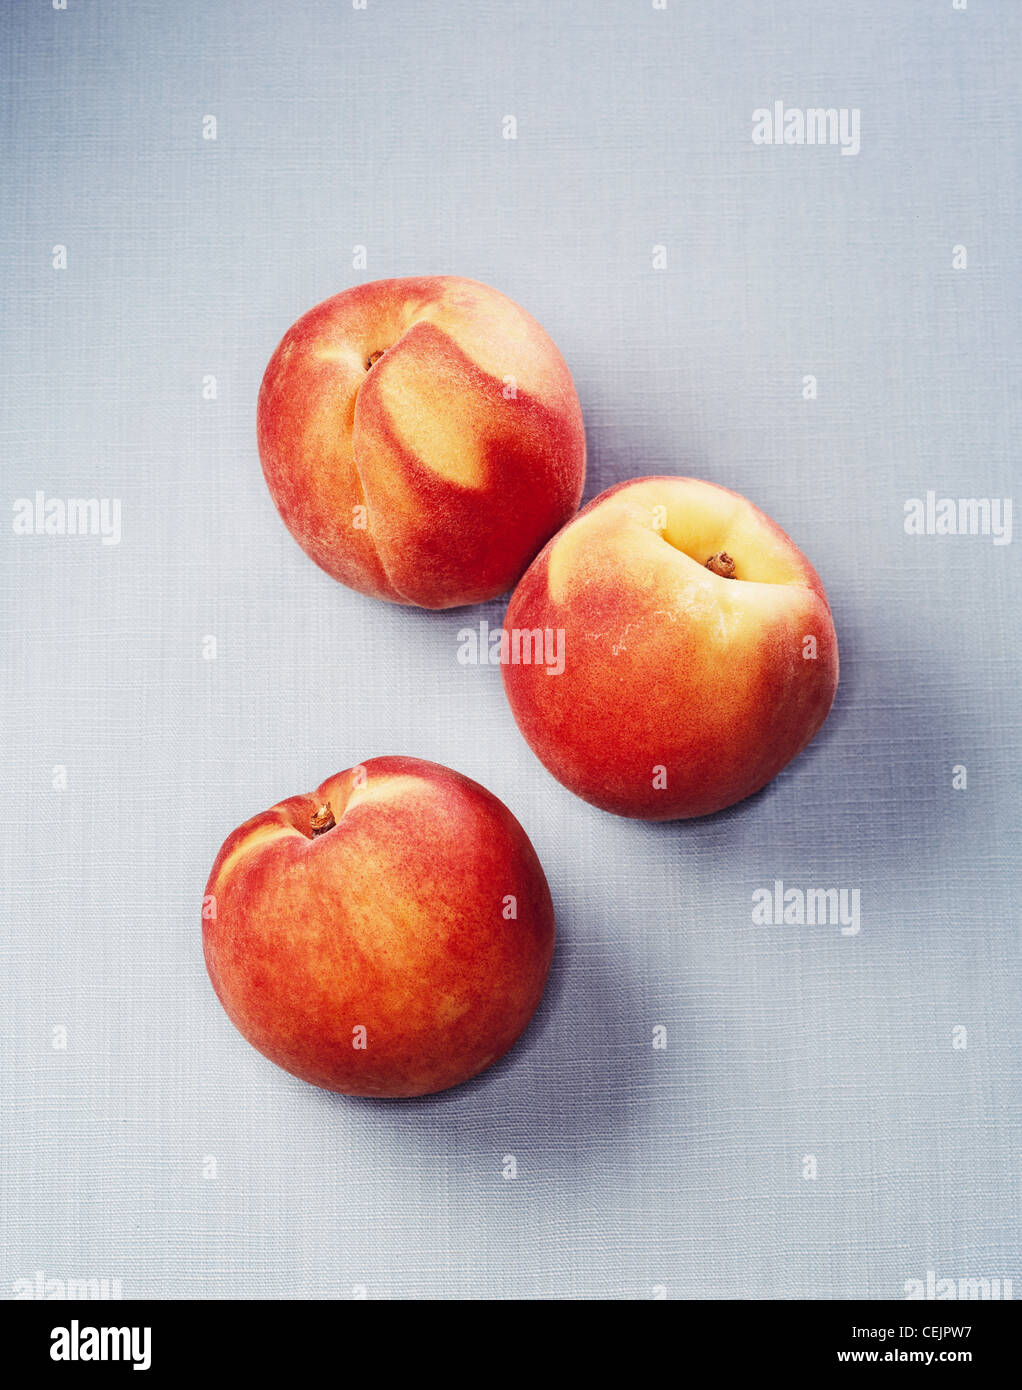 Peaches on a light grey background - Stock Image